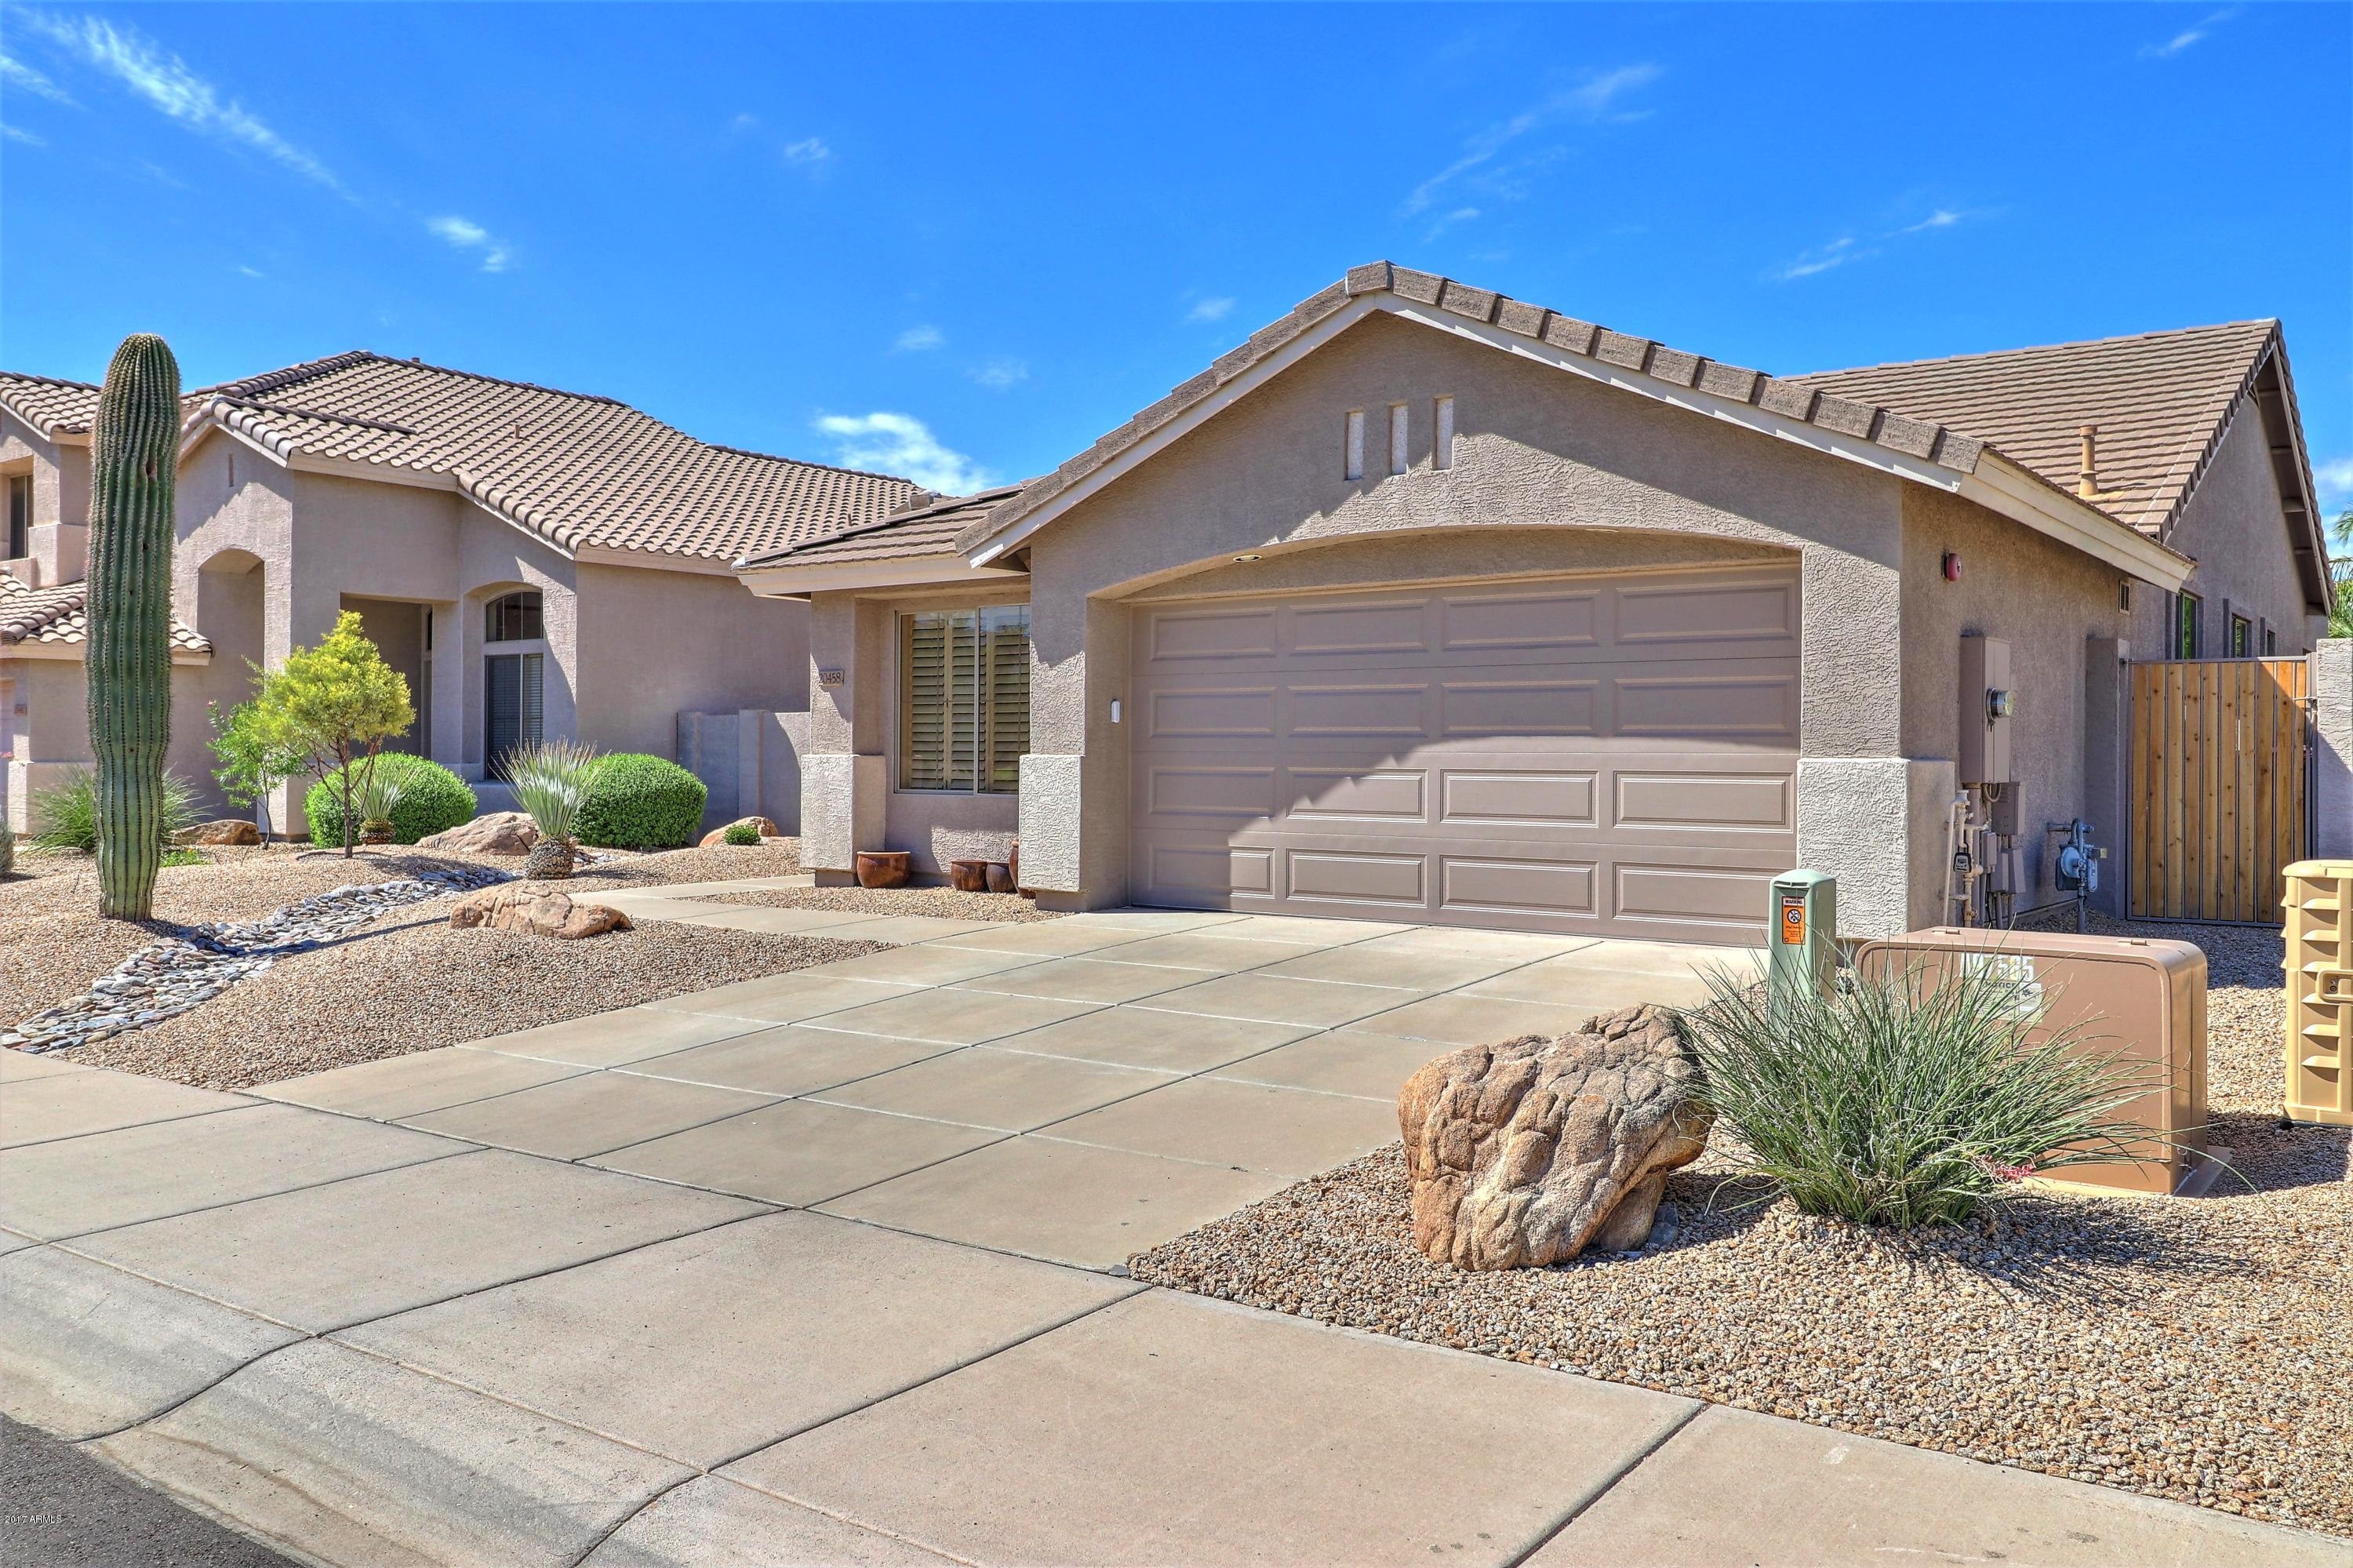 20458 N 78th Way, Scottsdale AZ 85255 - Photo 2